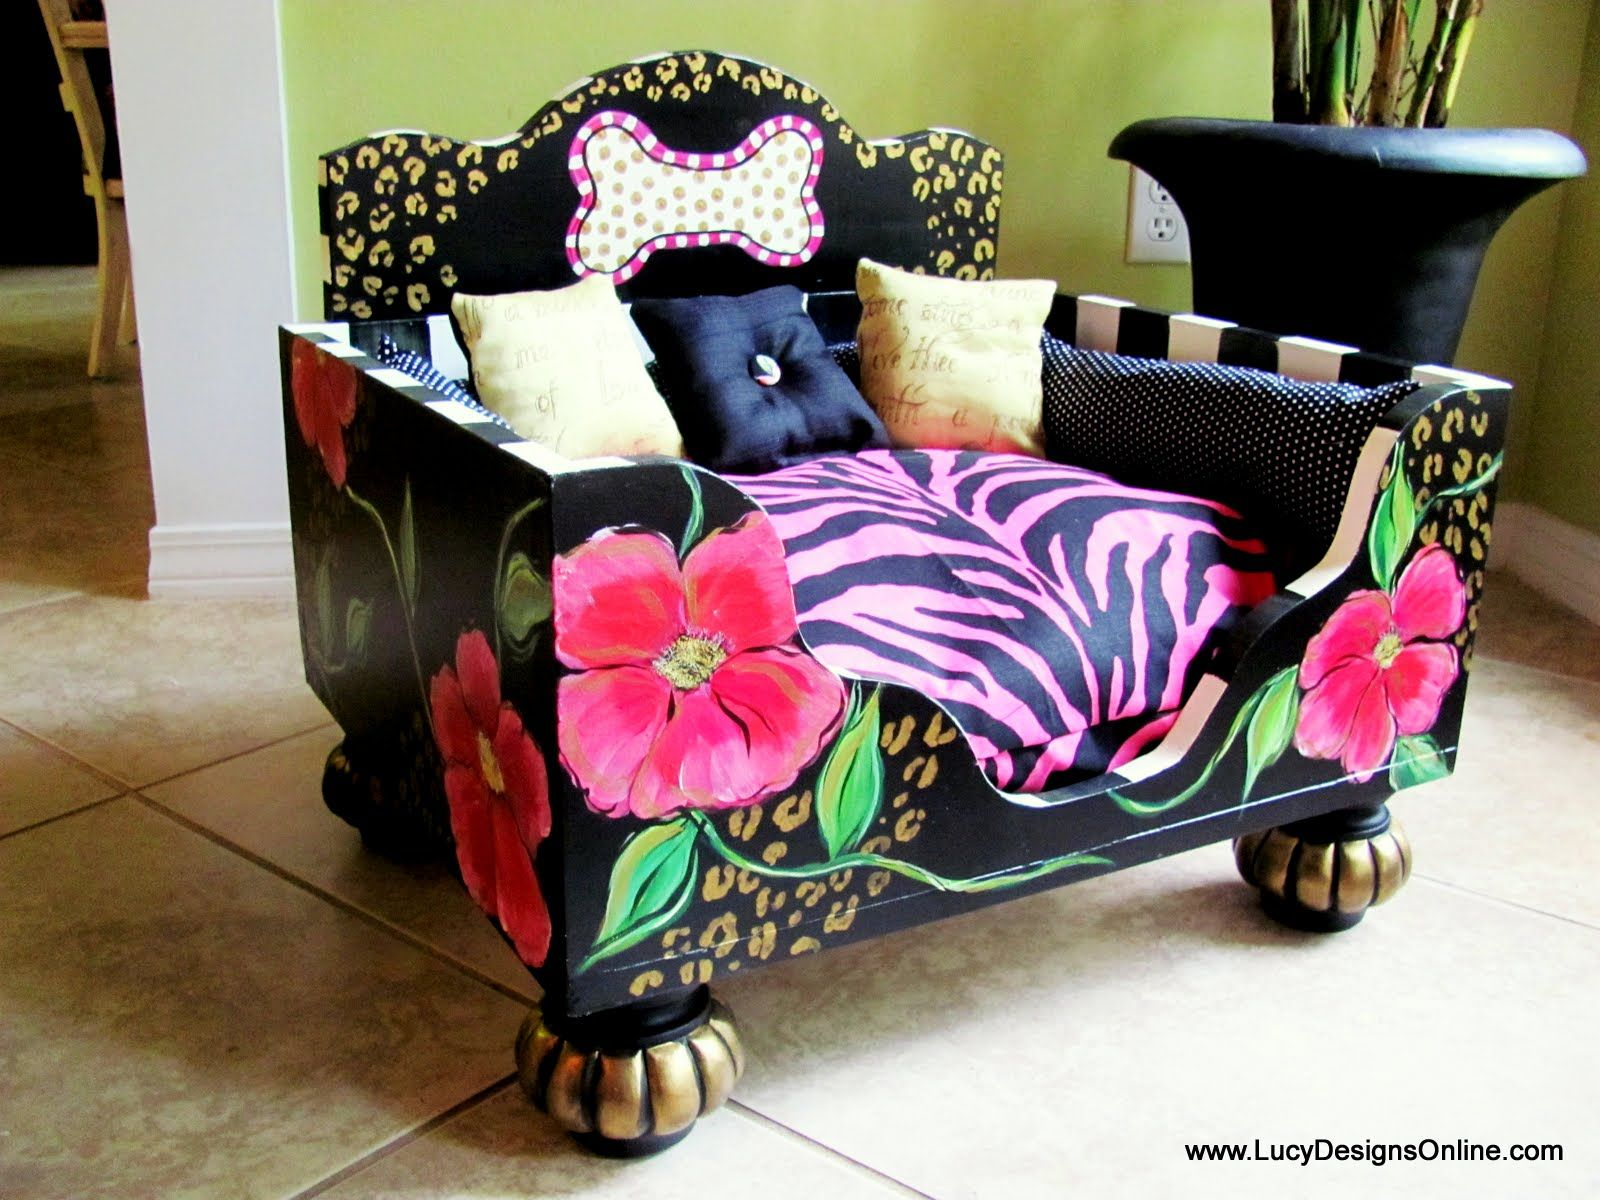 Fit for a Diva! Dog bed, Designer dog beds, Dog bed luxury